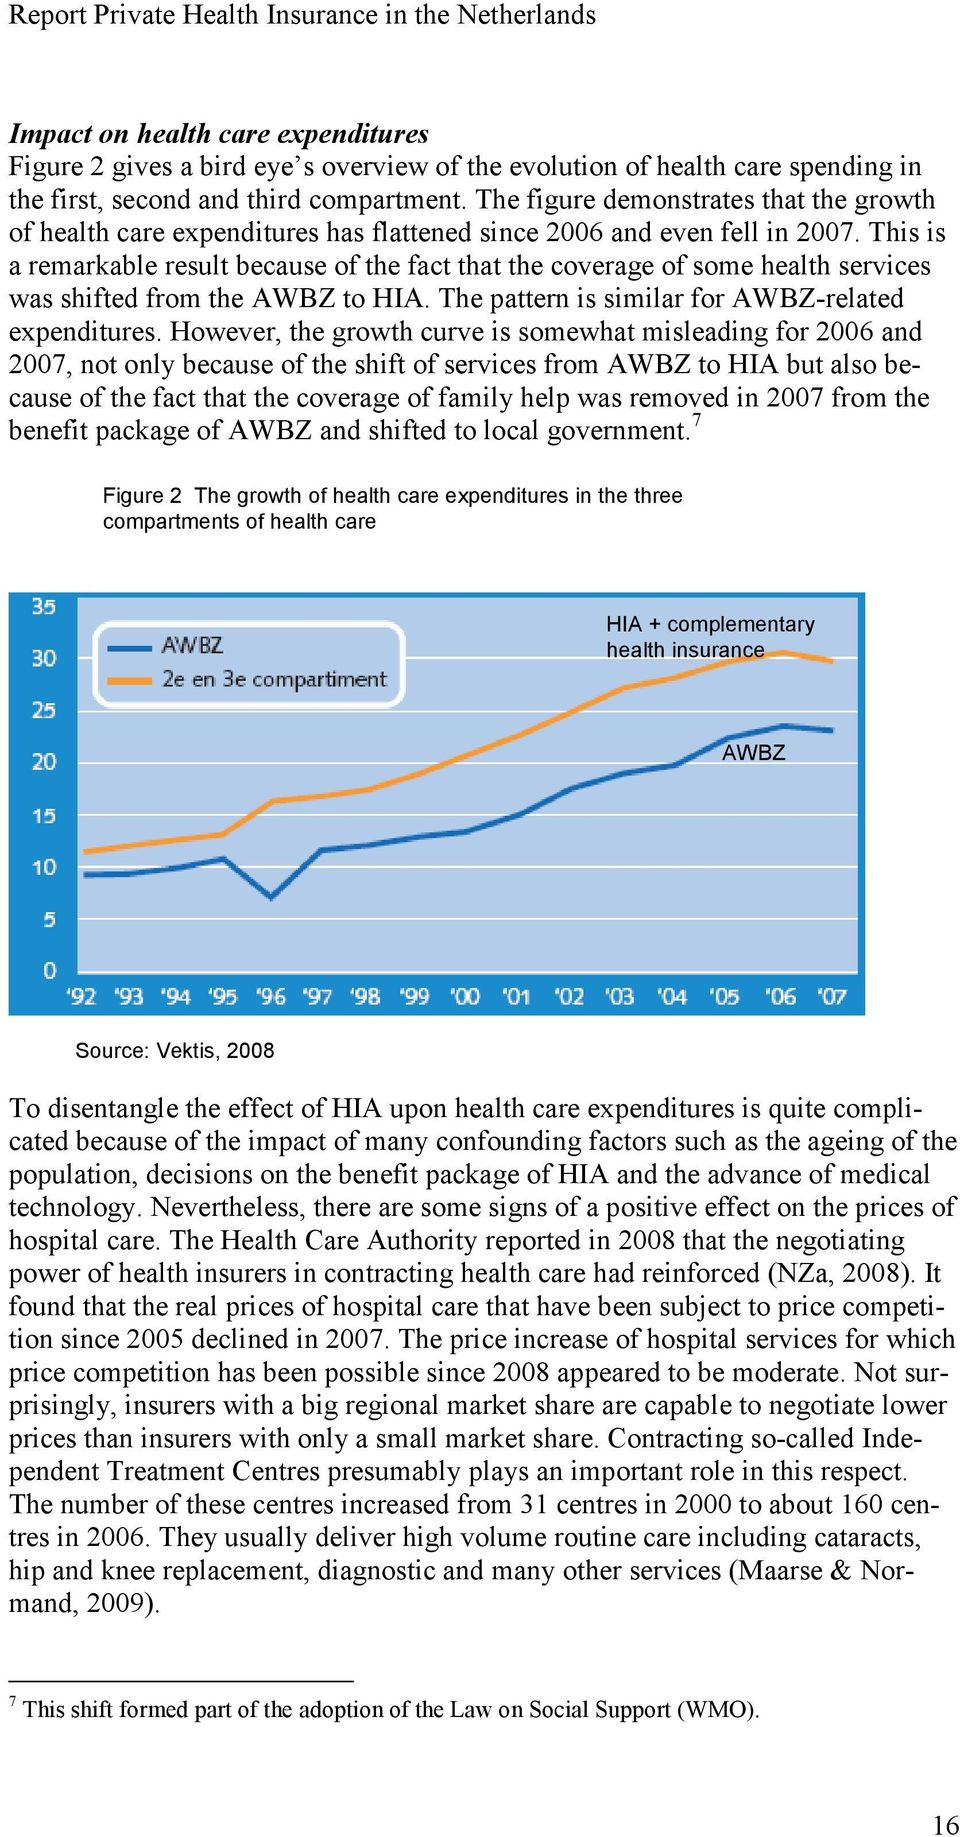 This is a remarkable result because of the fact that the coverage of some health services was shifted from the AWBZ to HIA. The pattern is similar for AWBZ-related expenditures.